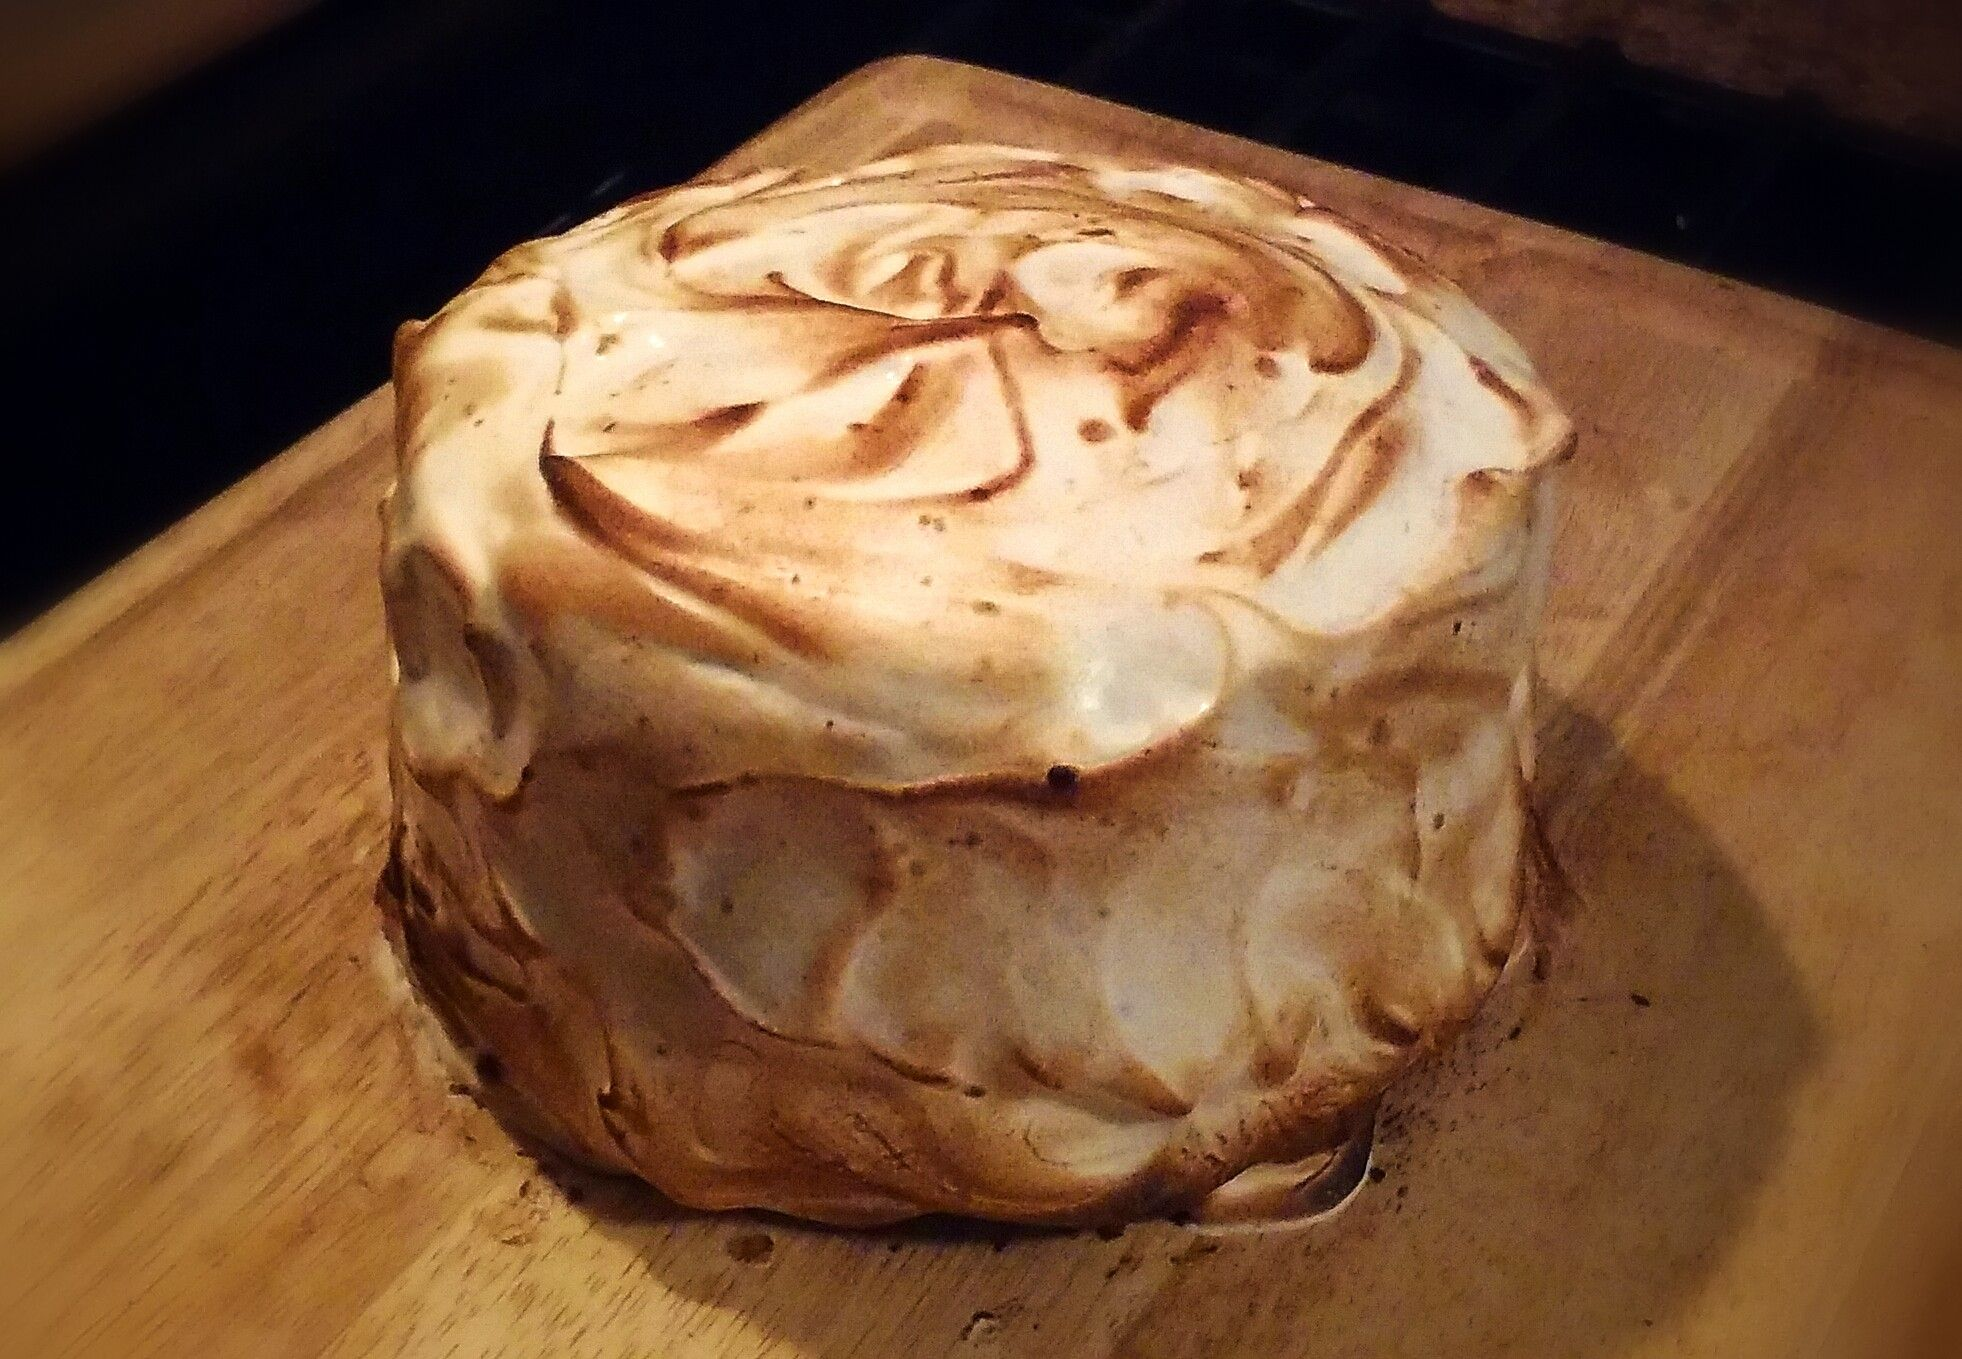 [Homemade] Smores Cake I made today #recipes #food #cooking #delicious #foodie #foodrecipes #cook #recipe #health